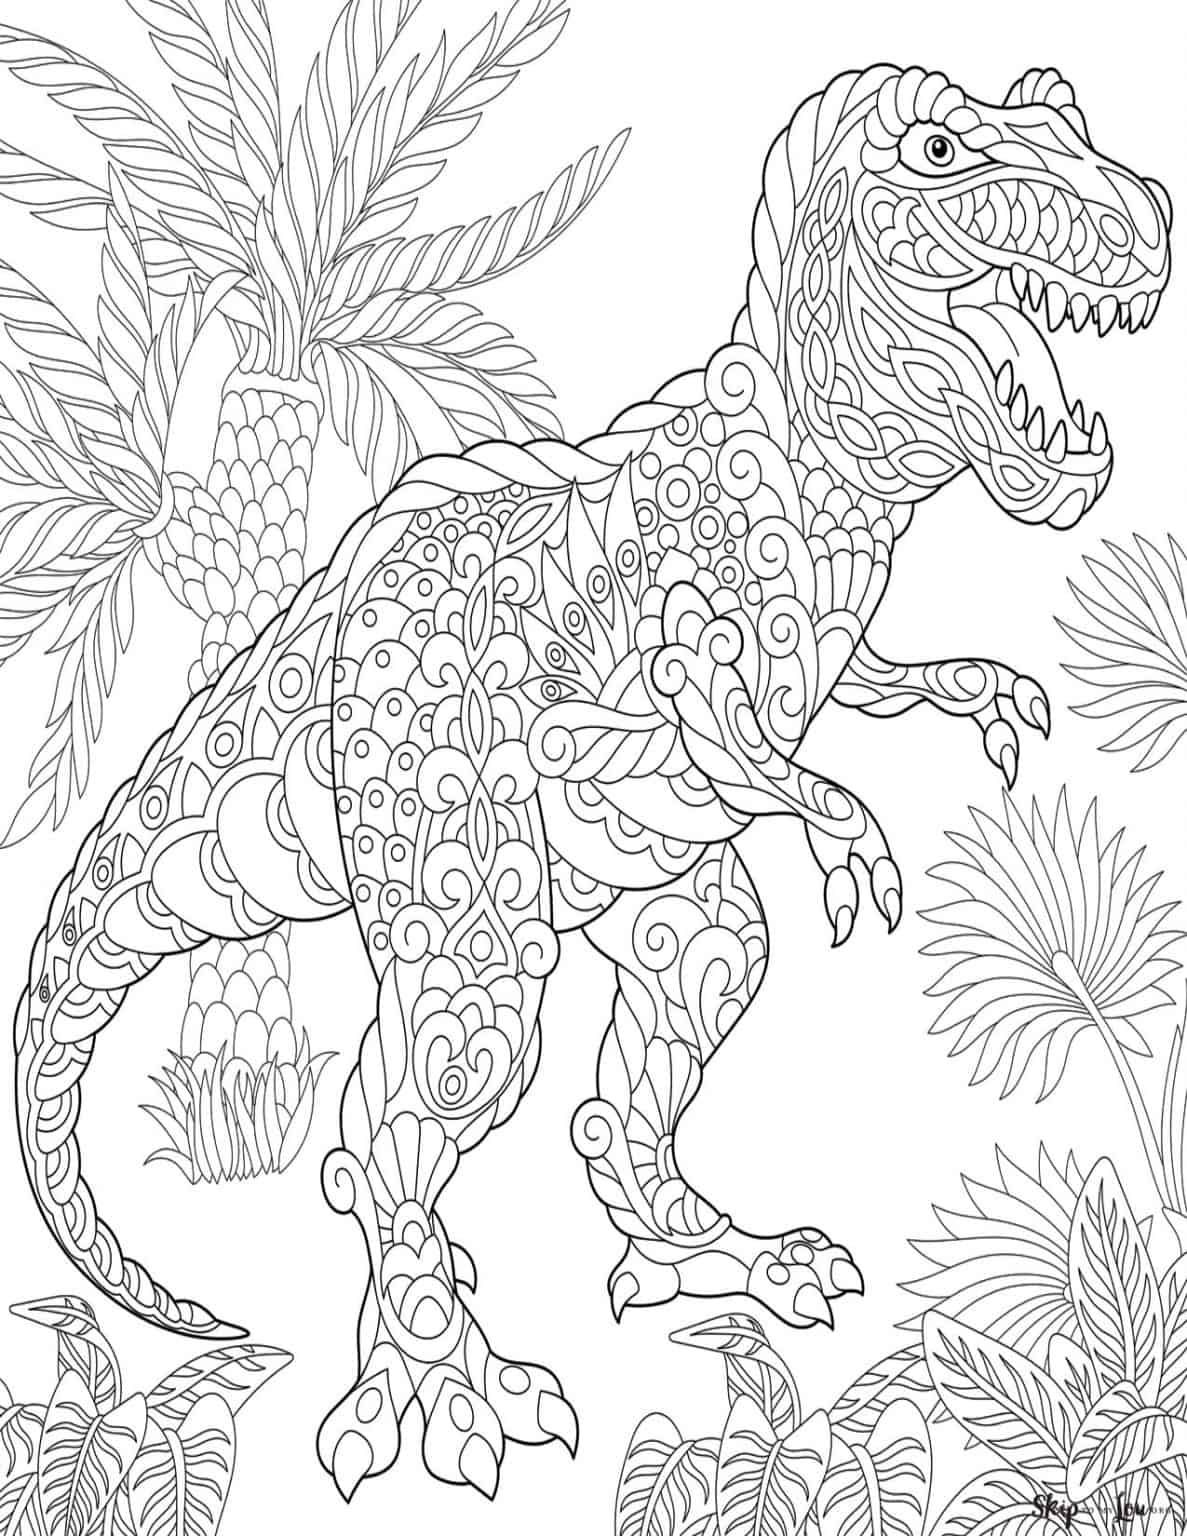 Dinosaur Coloring Pages In 2020 Dinosaur Coloring Pages Dinosaur Coloring Dinosaur Coloring Sheets